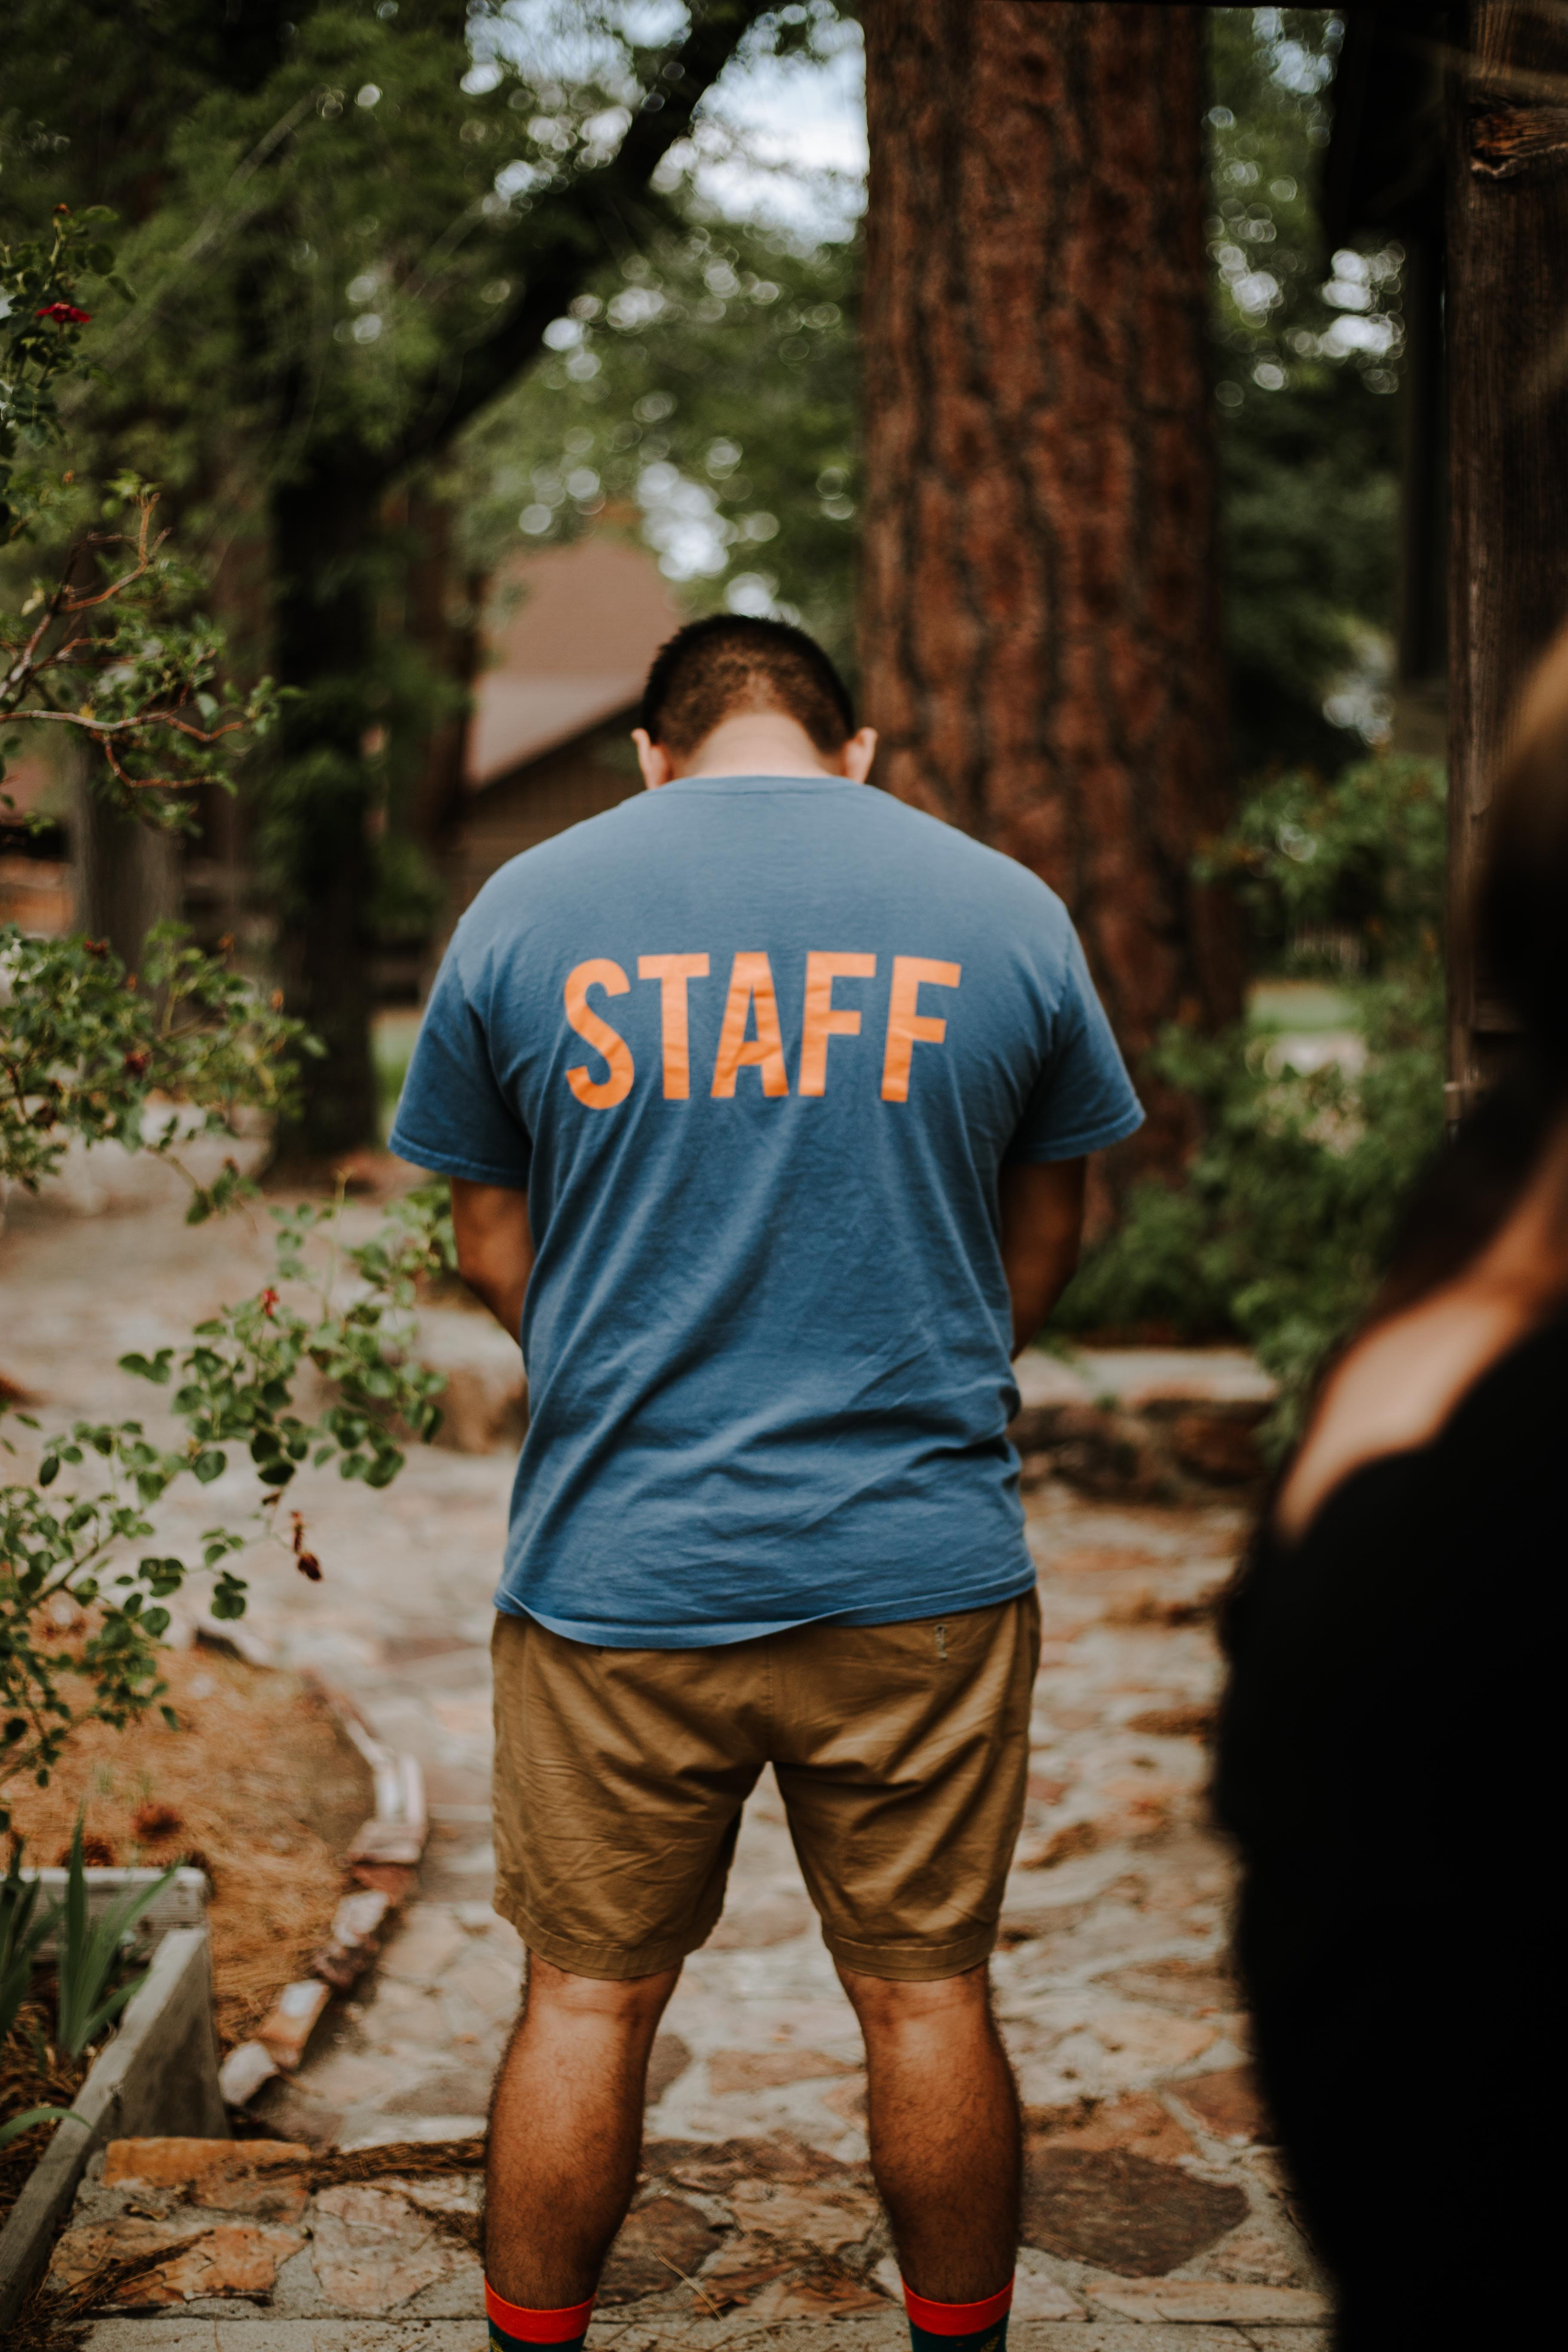 standing man wearing staff t-shirt near tree